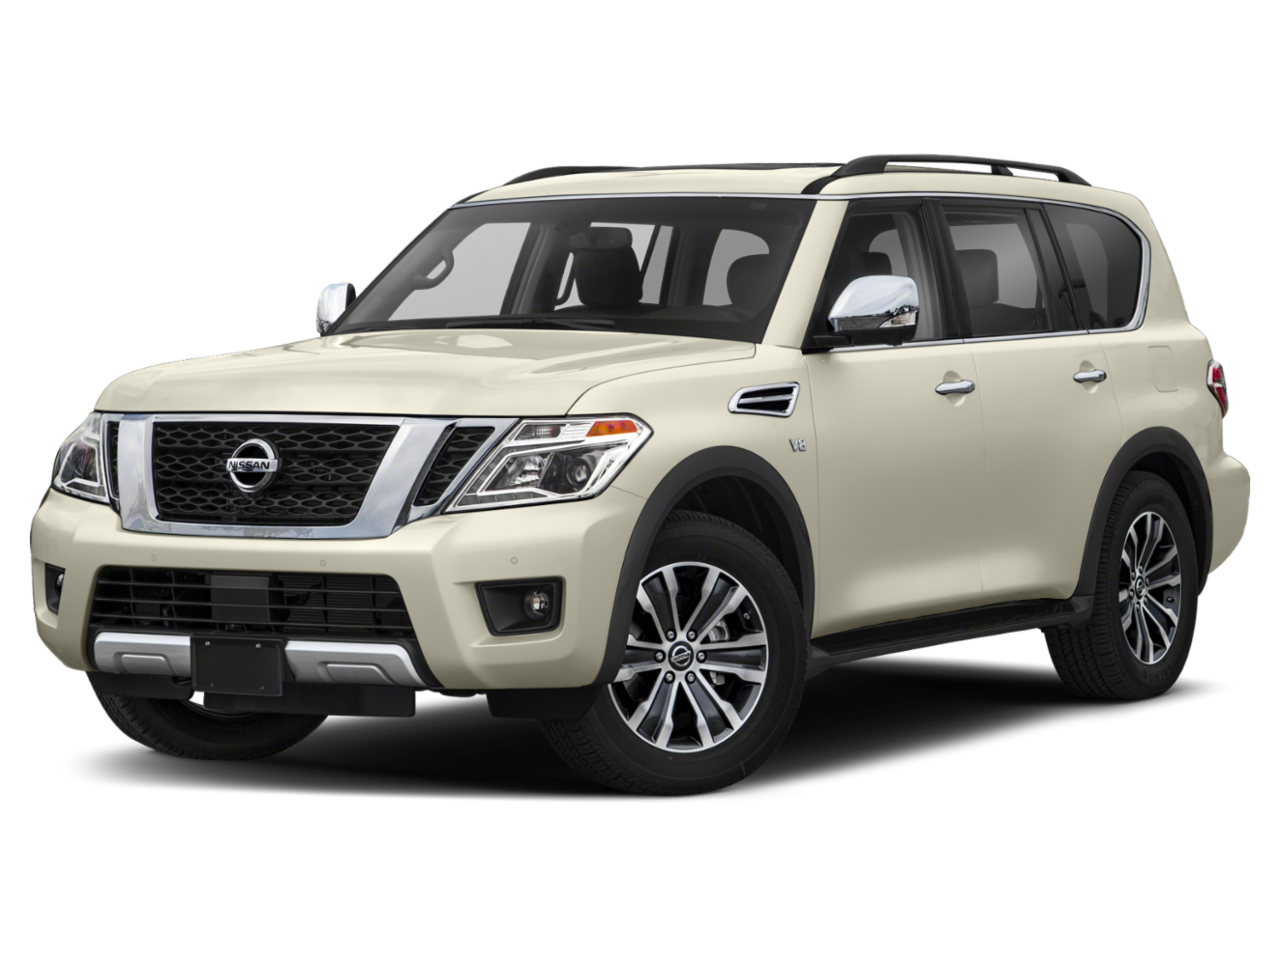 Buyer's Guide: 2019 Nissan Armada